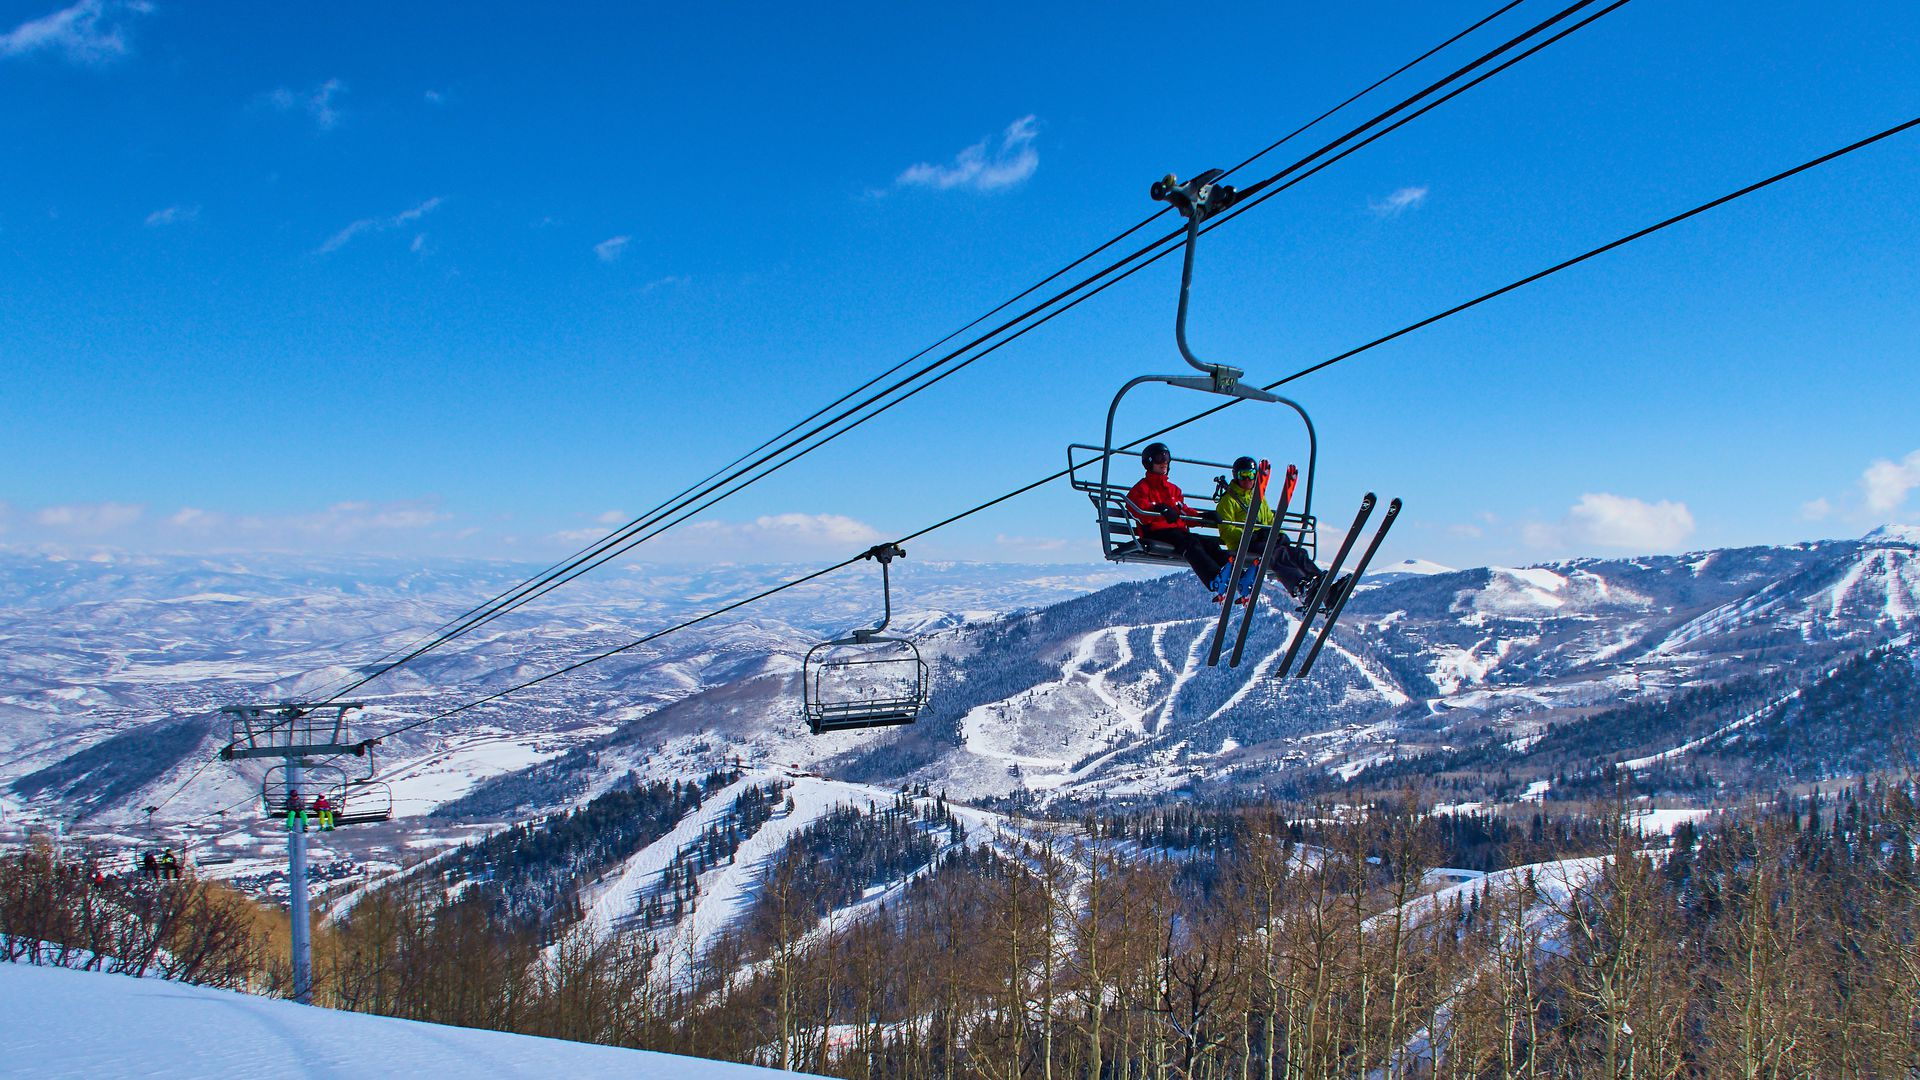 Skiers are sitting in a chair lift with panoramic view of the Wasatch Range in the Rocky Mountains on March 02, 2015 in Park City, Utah, United States.